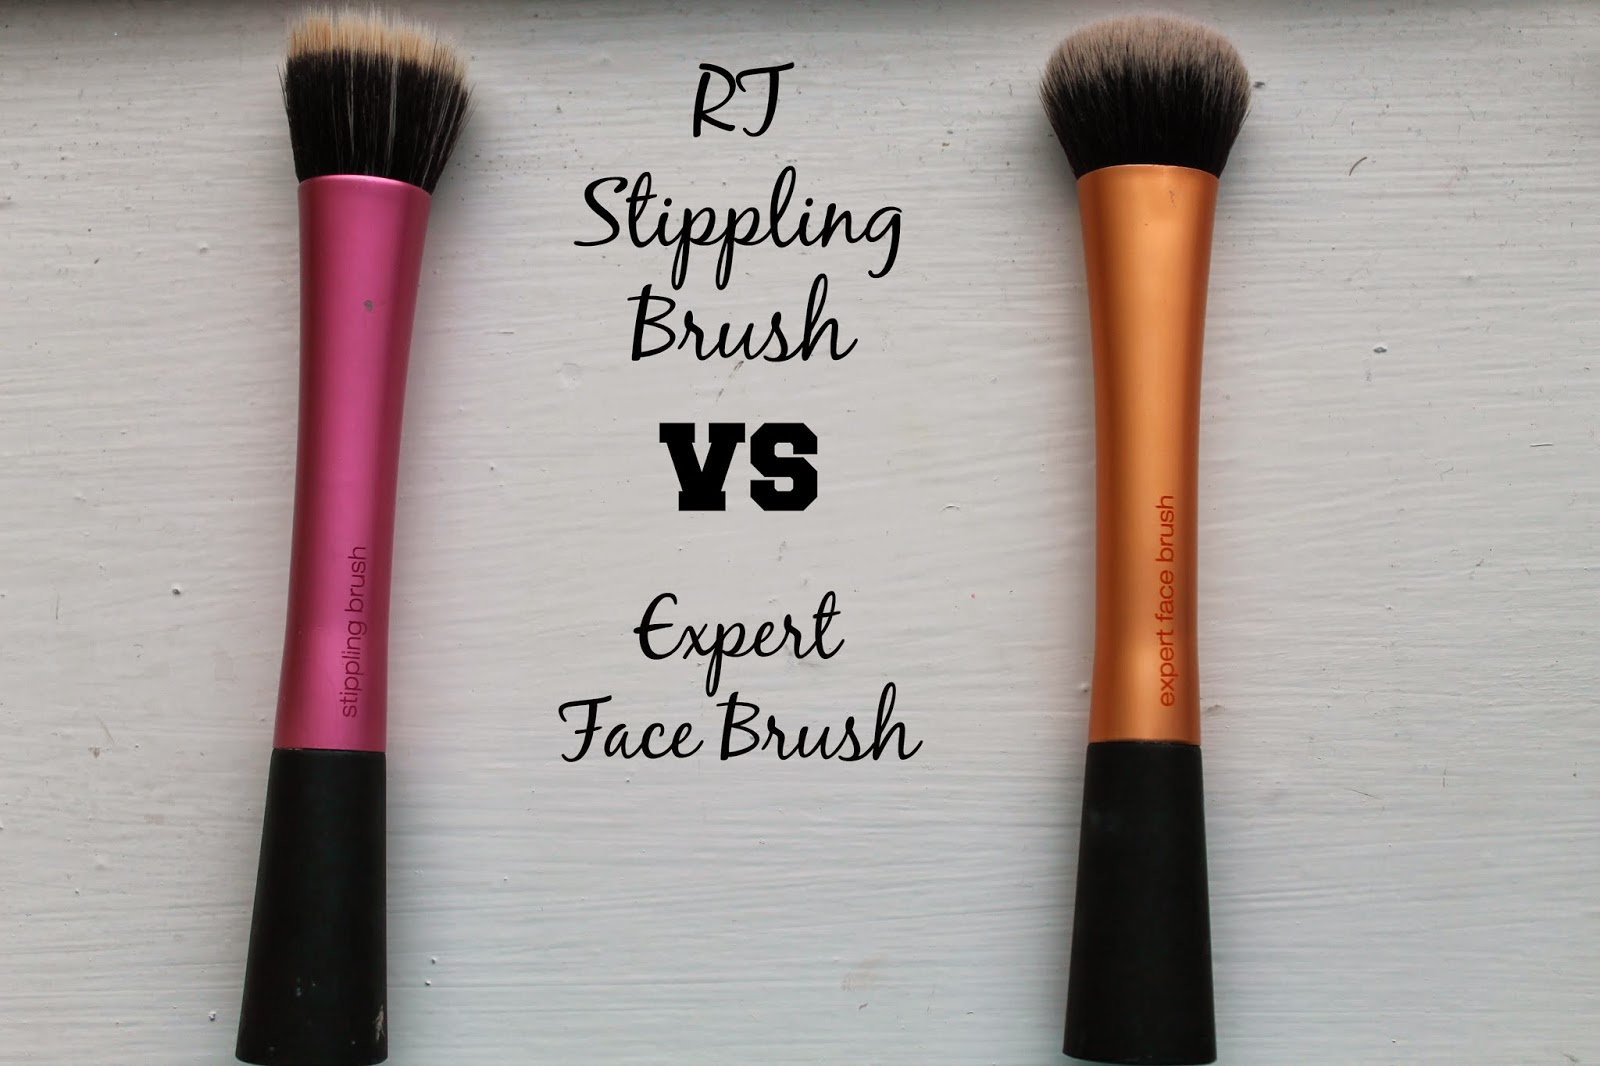 Expert Face Brush by Real Techniques #17